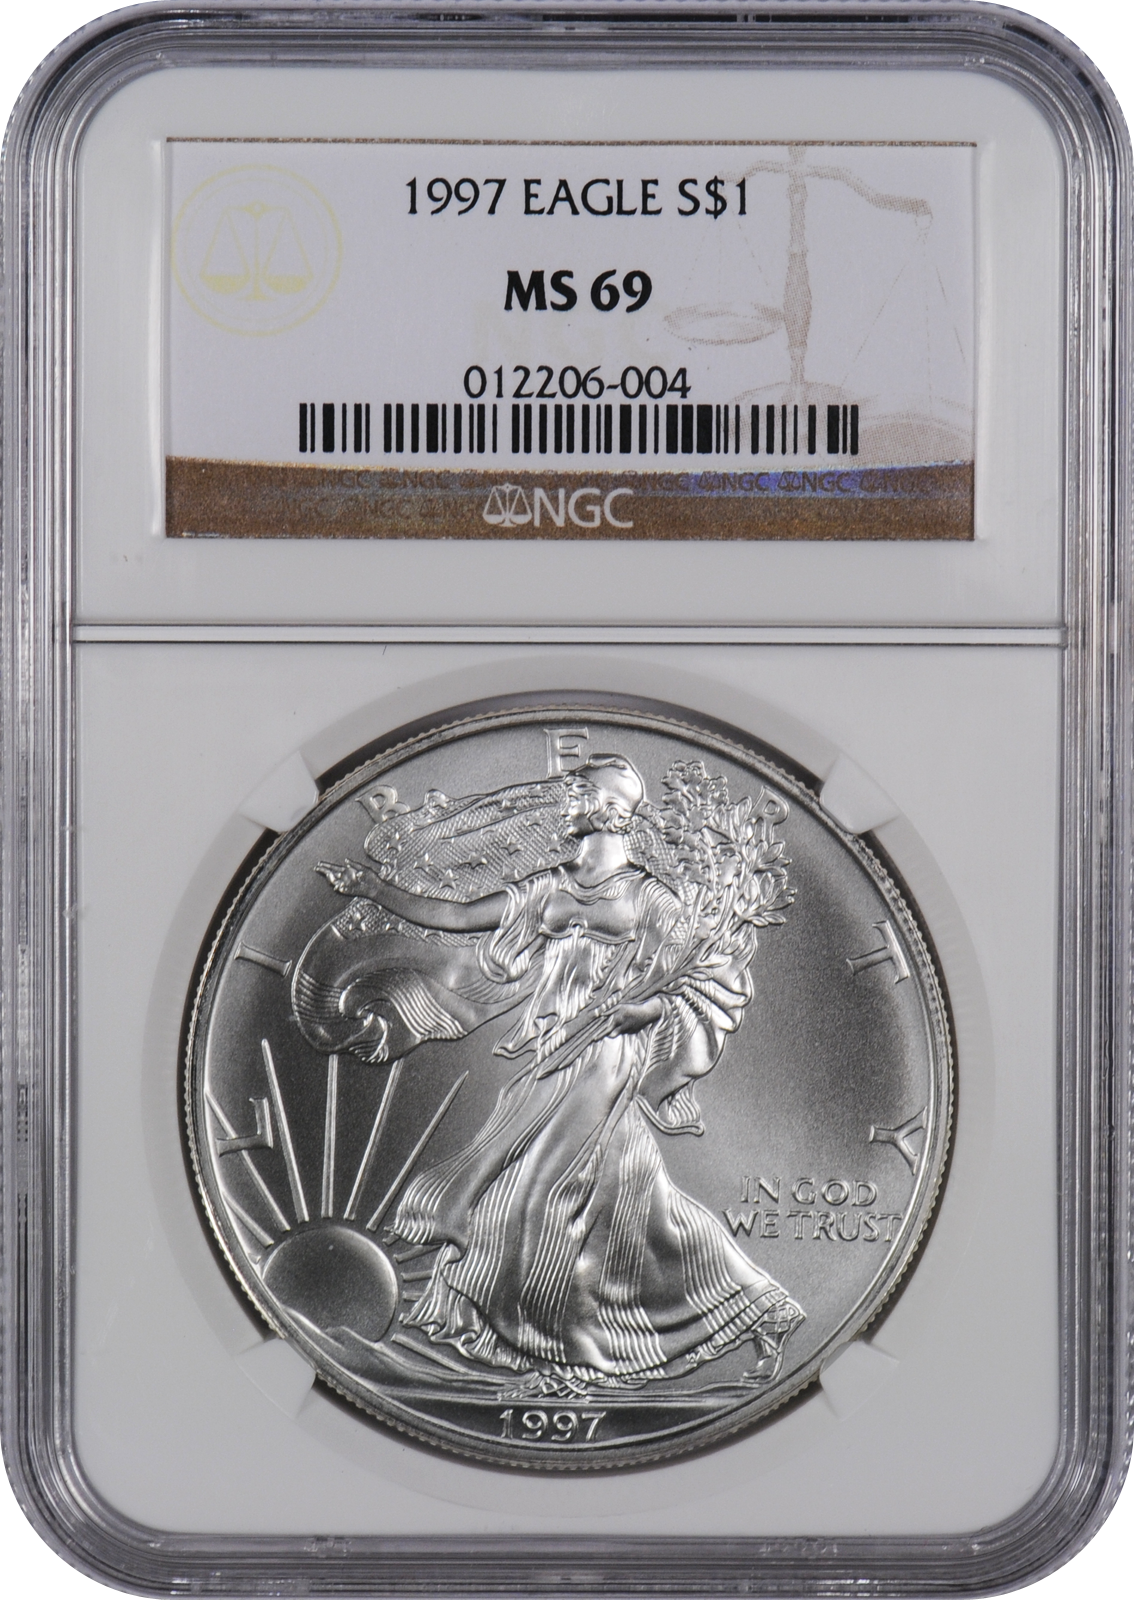 This 1997 Silver Eagle Ms69 Is A Popular Coin For Investors And Collectors Alike This Coin Has A Face Value Of One Us Doll Silver Eagles Coins Silver Bullion